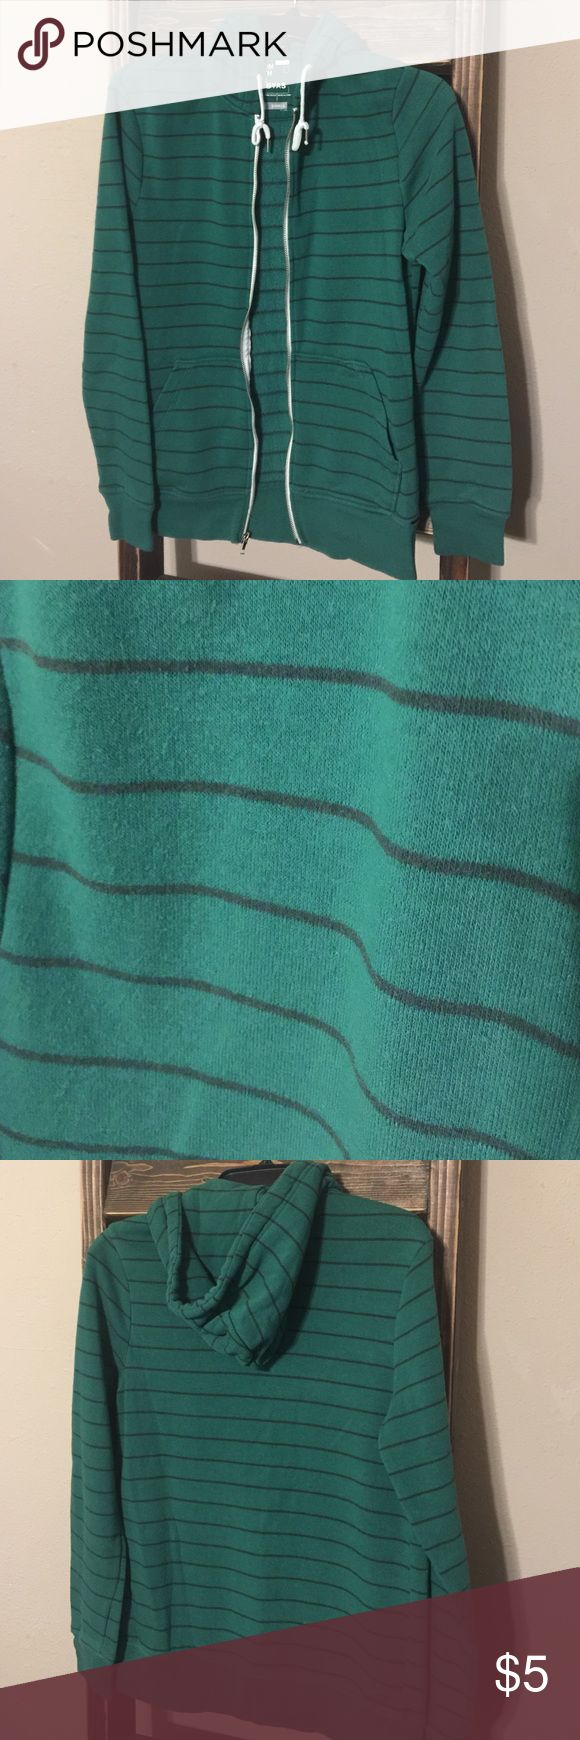 """Warm up Cozy Striped Hoodie Green and black striped zip up hoodie. Women's Small size. Bust measures 18"""" and length 26"""". Good, clean condition. No rips, tears or stains. Comes from smoke free home. Tops Sweatshirts & Hoodies"""